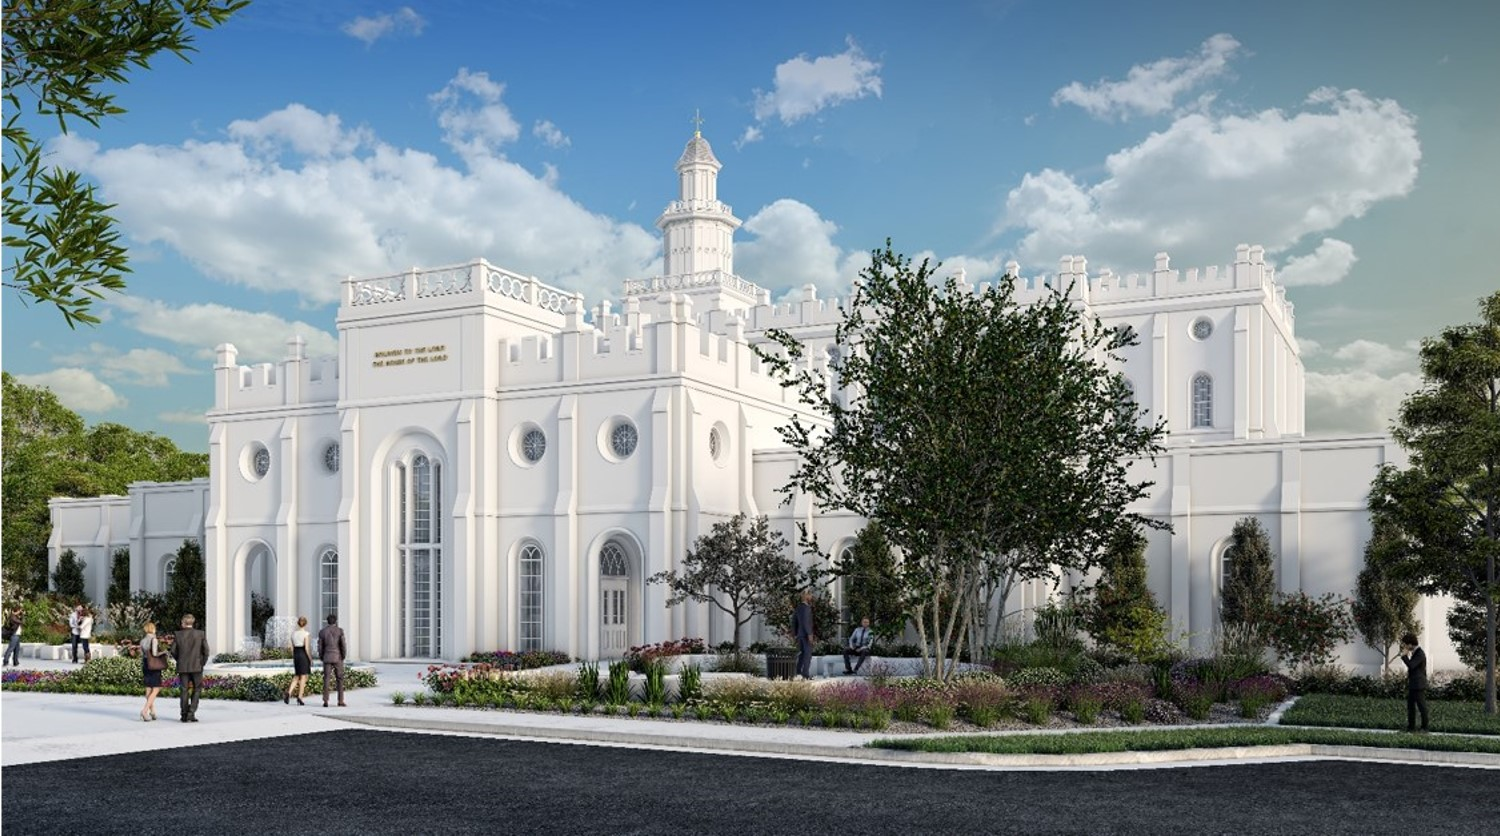 Rendering of the new temple annex perspective showing the west tower of the St. George Utah Temple.